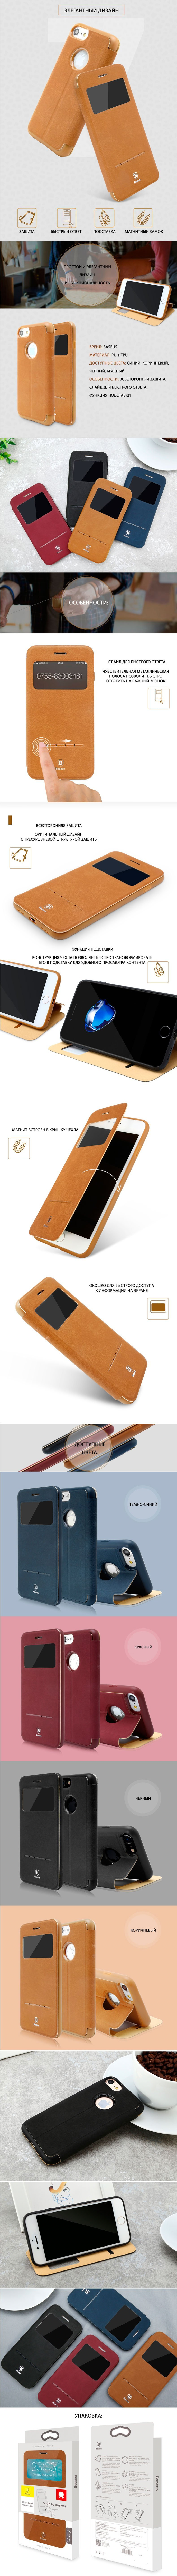 Чехол-книжка Baseus Simple Leather для iPhone 7 фото обзор